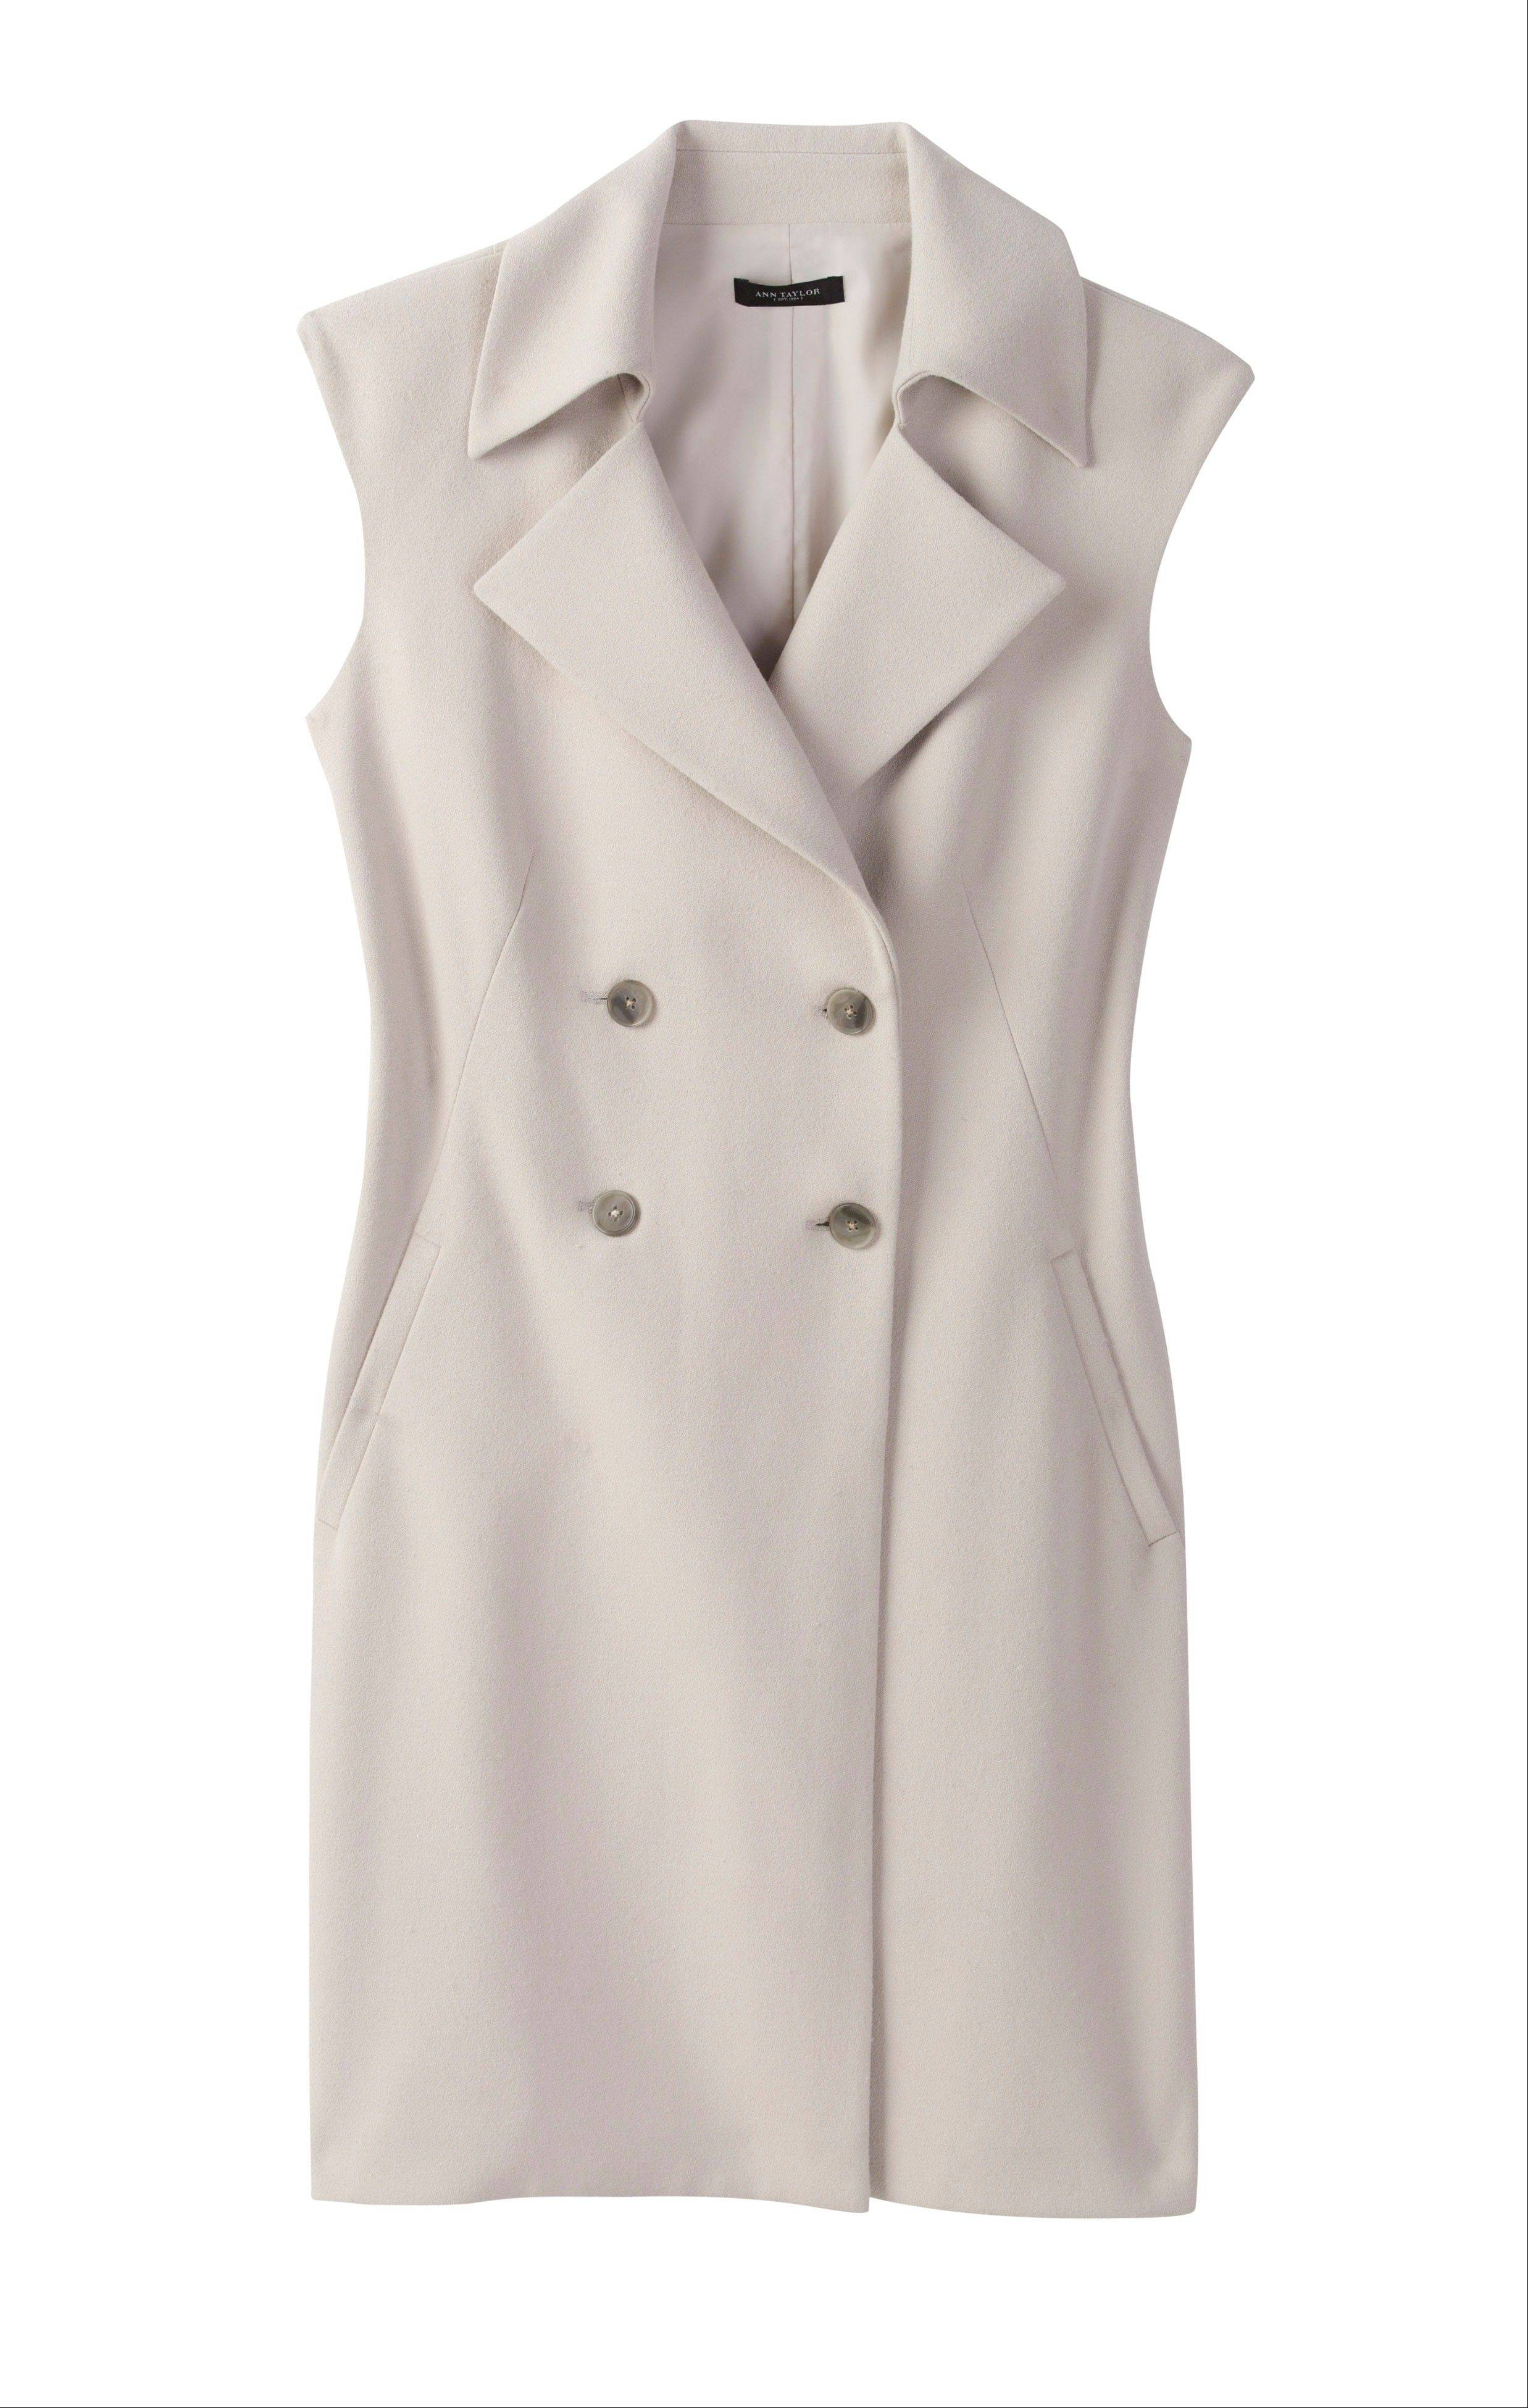 An Ann Taylor sleeveless trench.